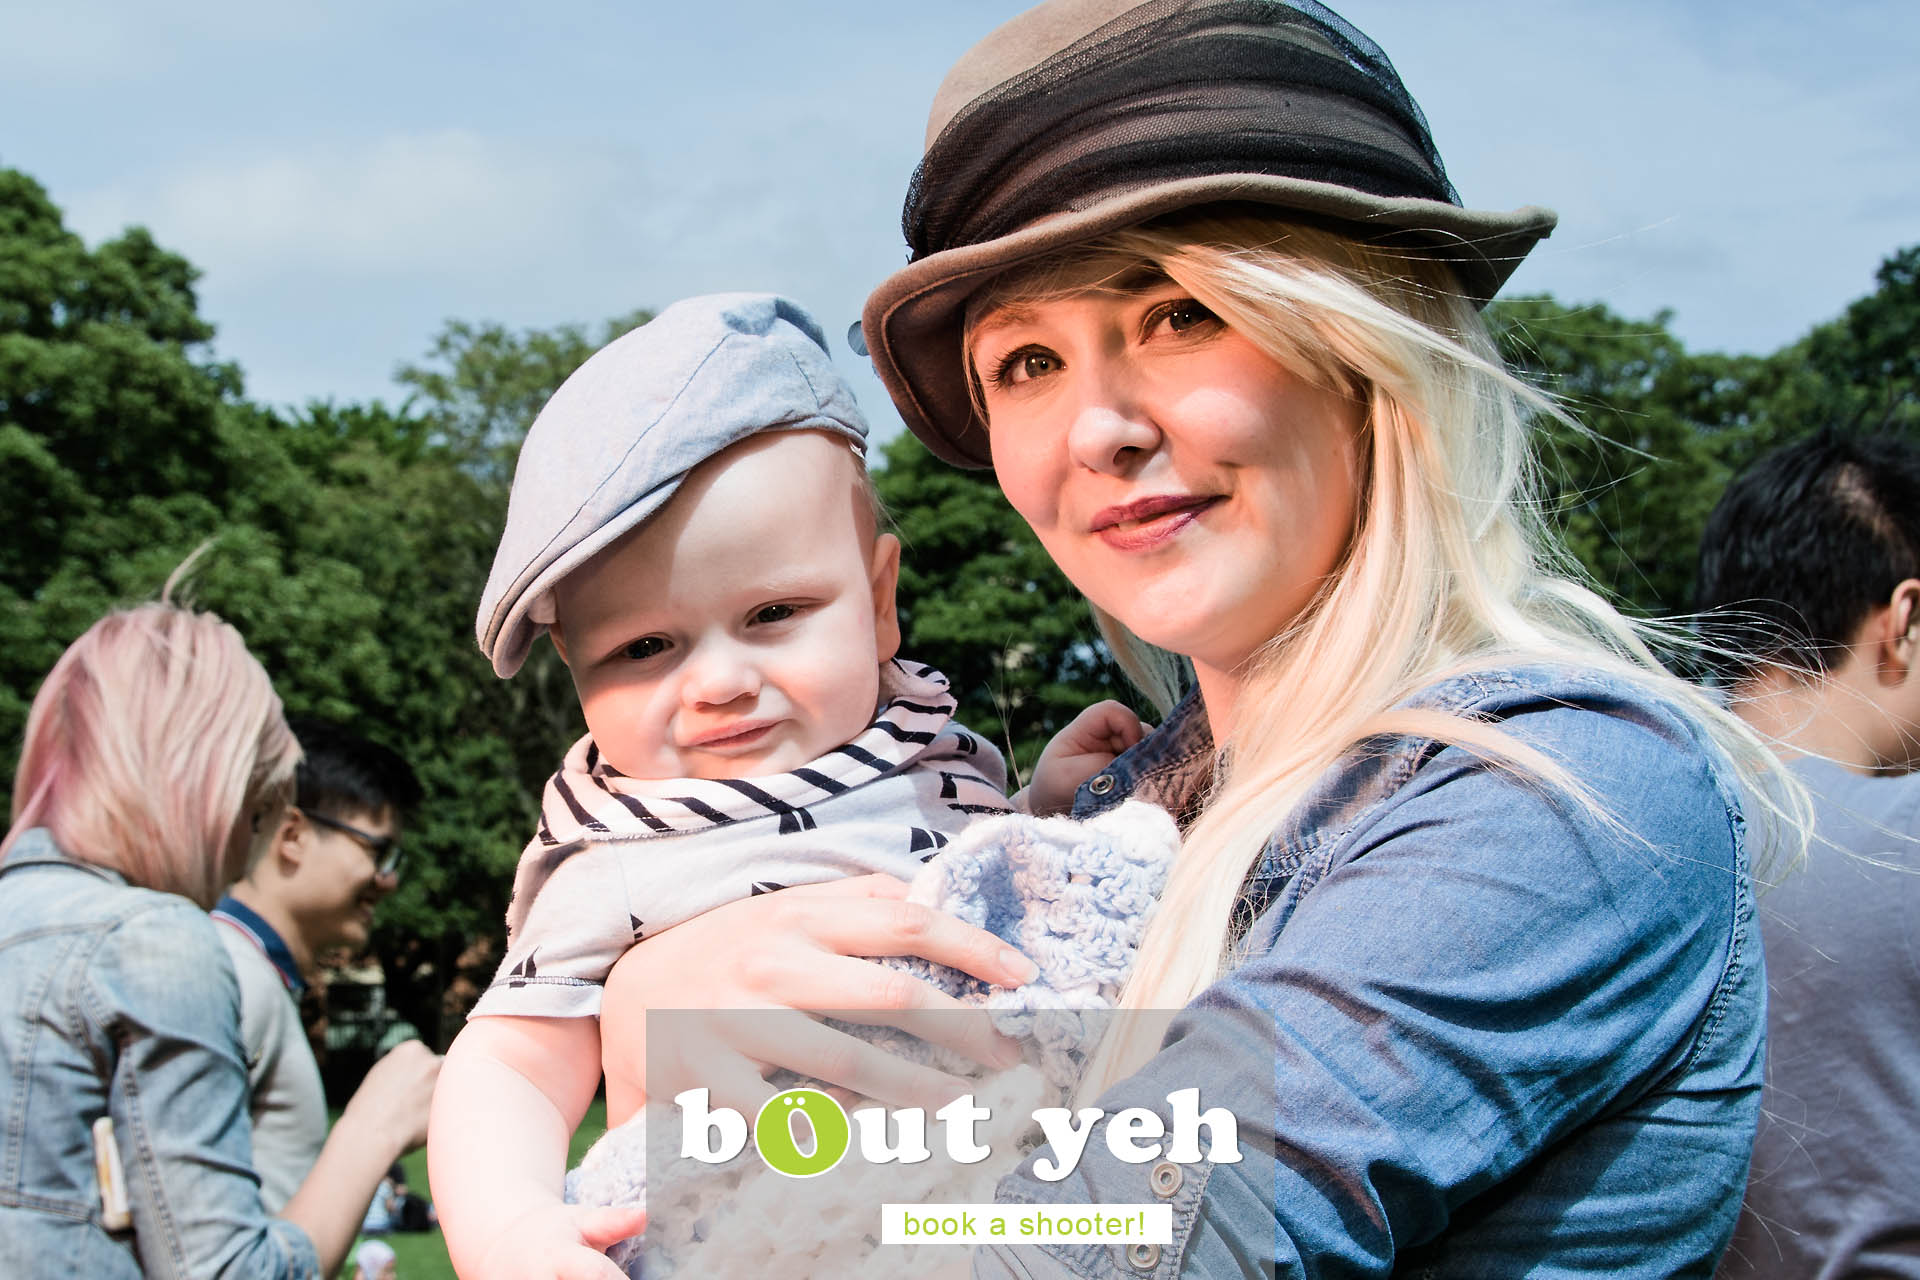 Petrina and Isaac Alexander at Botanic Gardens, Belfast, Northern Ireland - photo 6867.